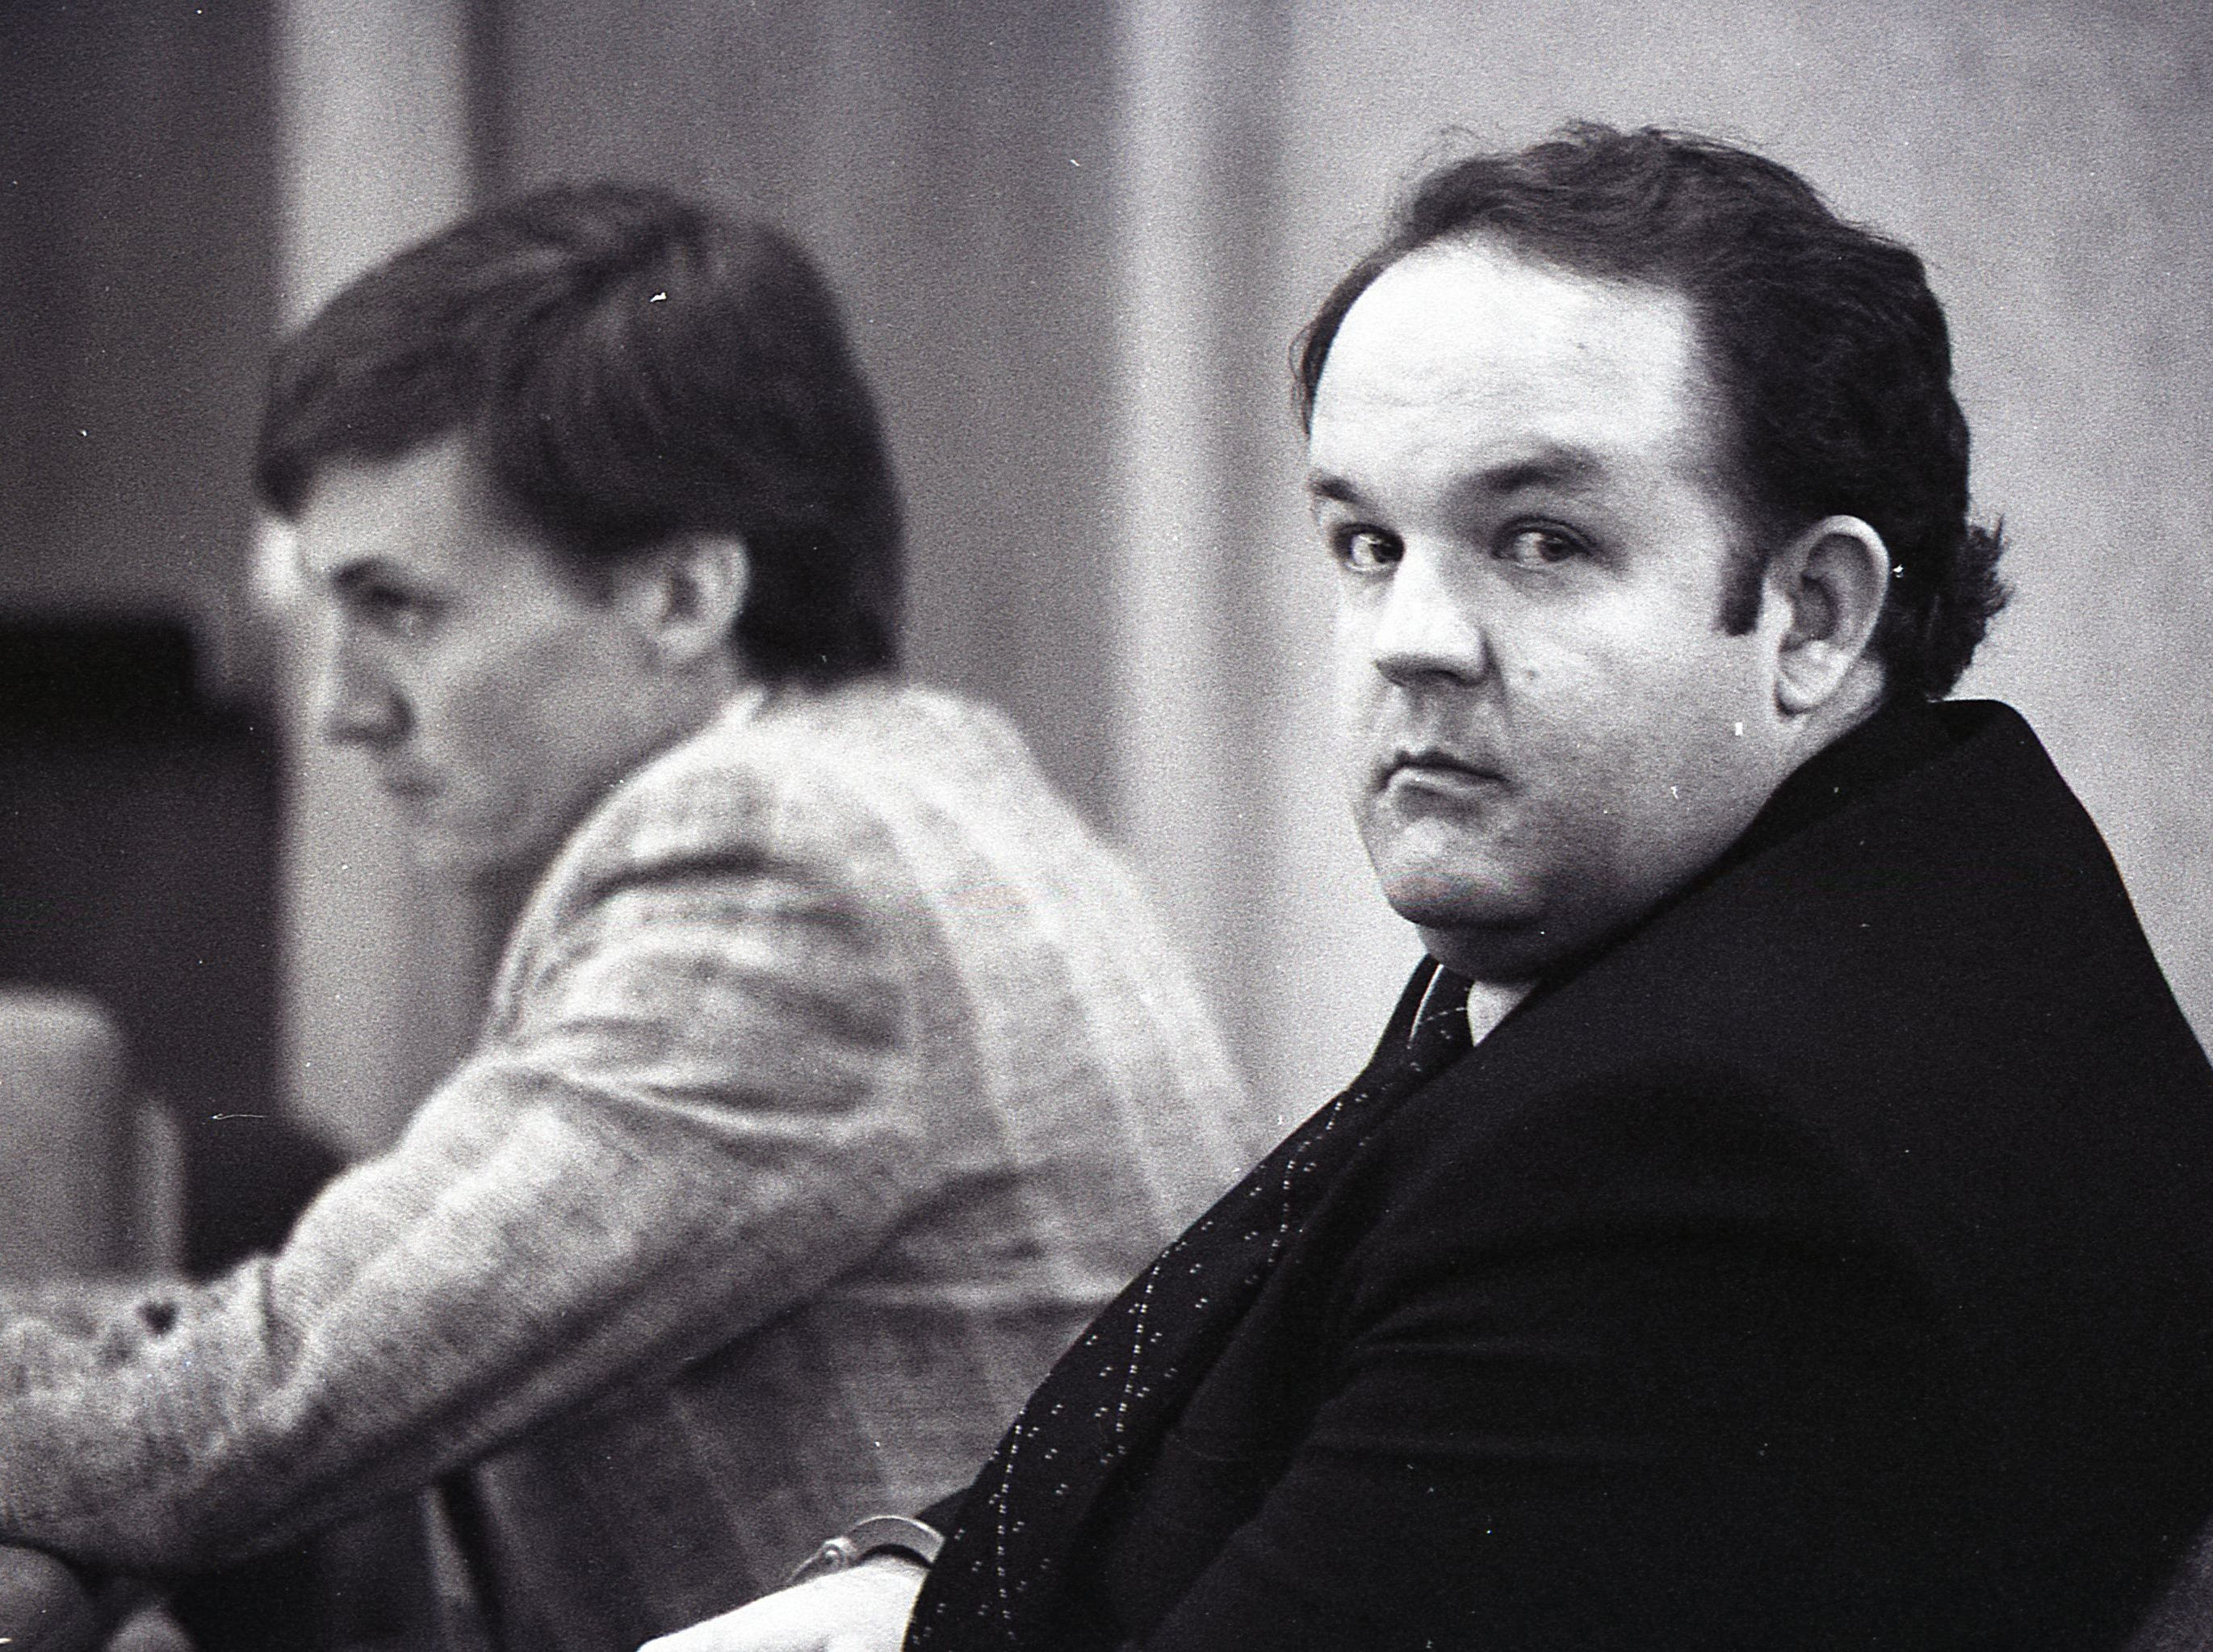 David Alan Gore (right) sits flanked by his attorneys during the proceedings in April of 1992 where an argument was made for a stay of execution for Gore. The request was granted by the Florida Supreme Court on April 29, 1988.